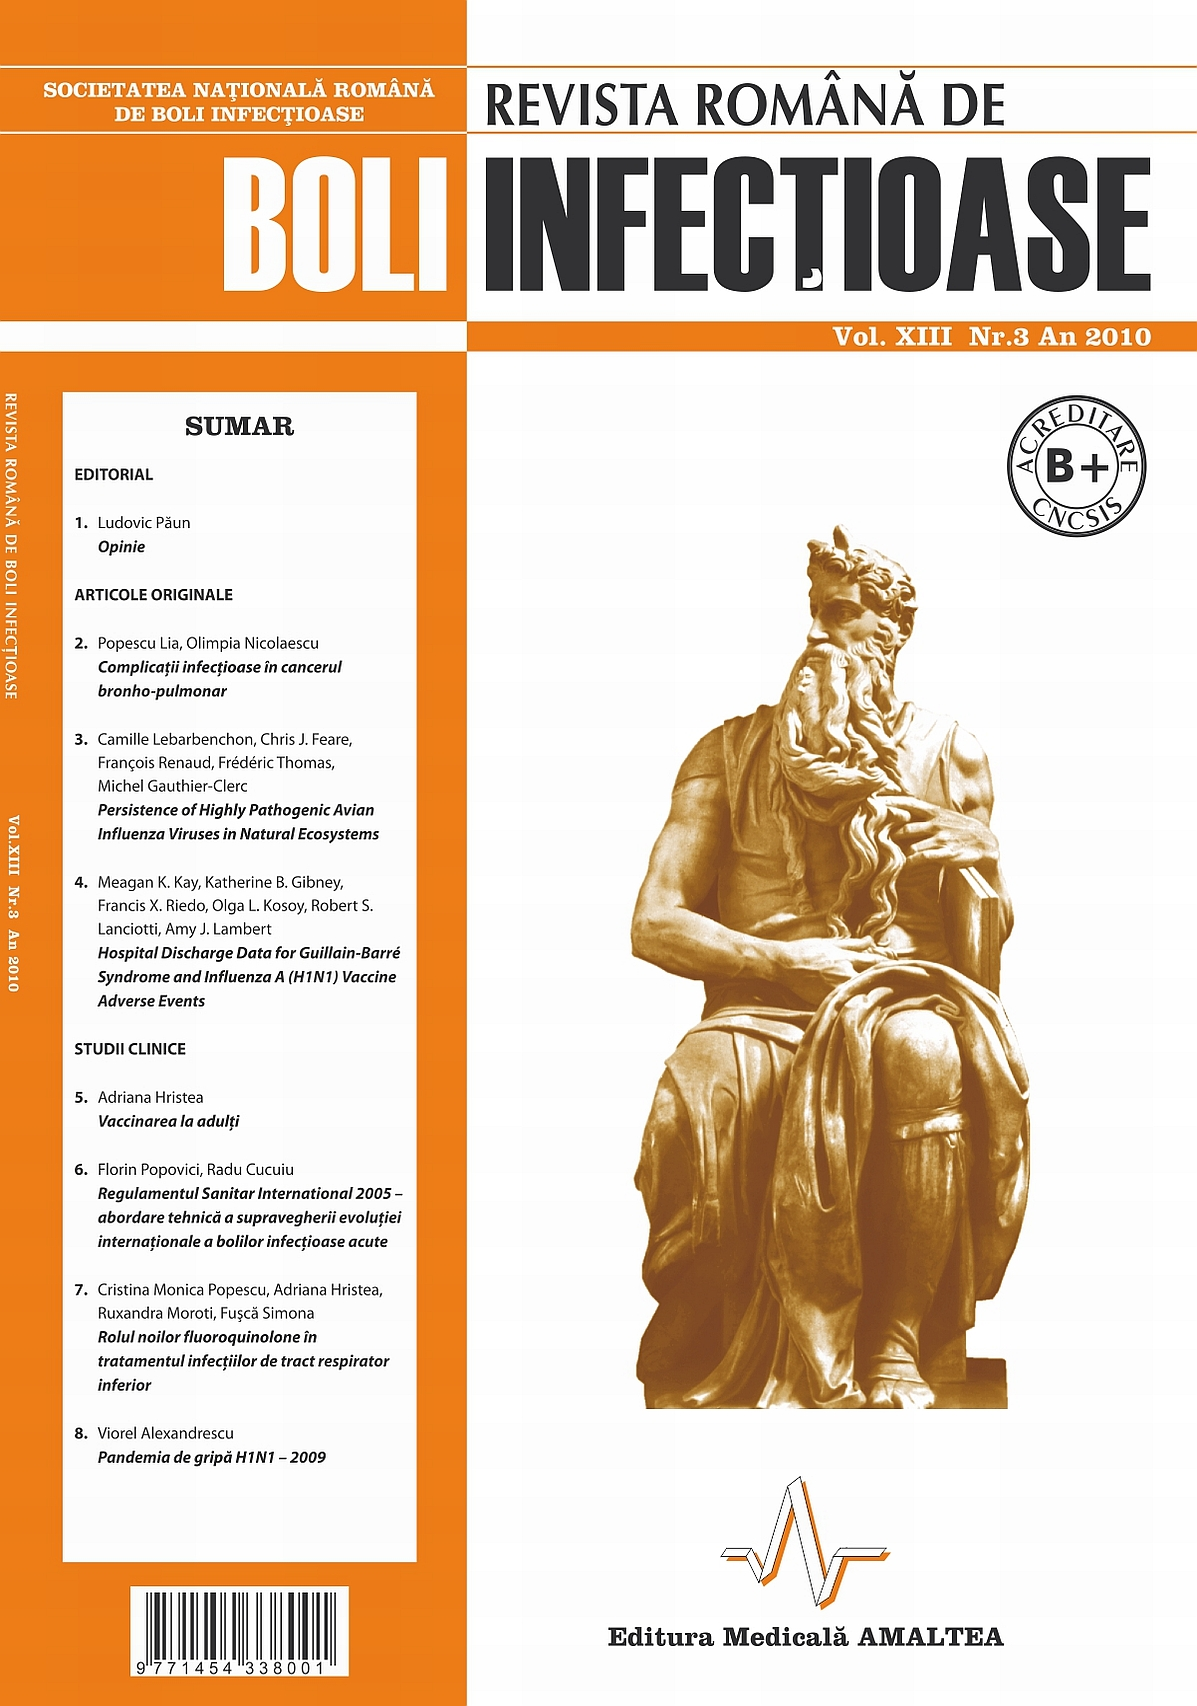 Revista Romana de Boli Infectioase | Vol. XIII, No. 3, 2010